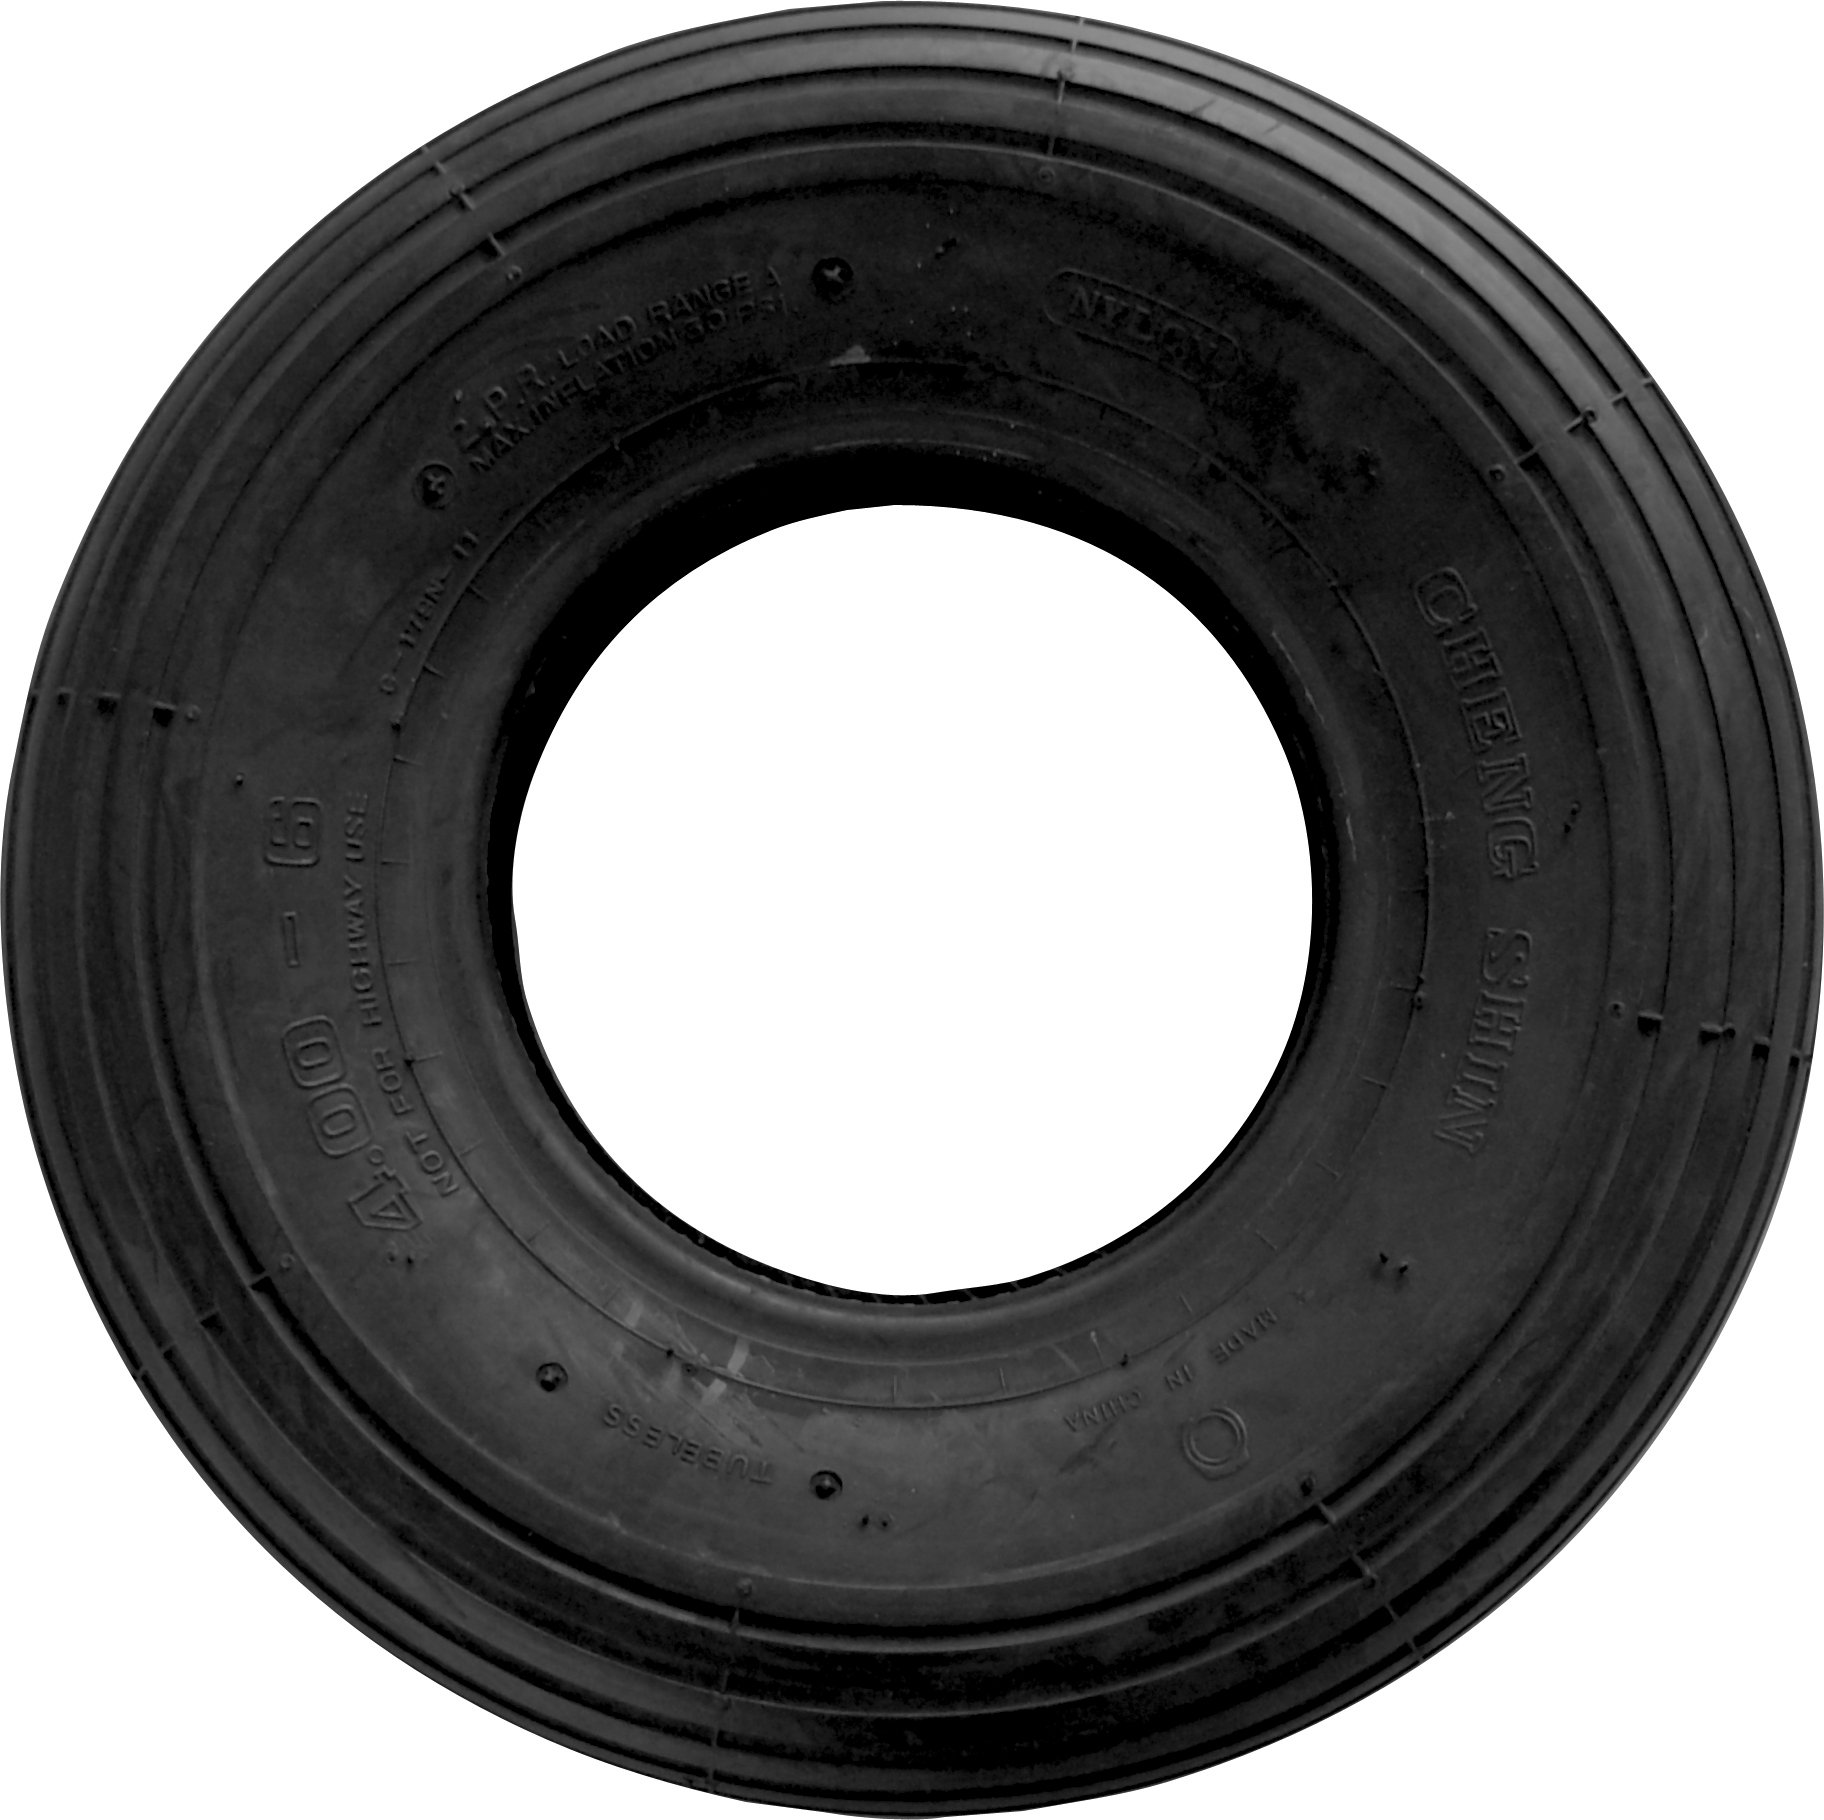 Shepherd Hardware 3338 4.80/4.00x8-Inch Wheelbarrow Replacement Tire, 16-Inch, Ribbed Tread